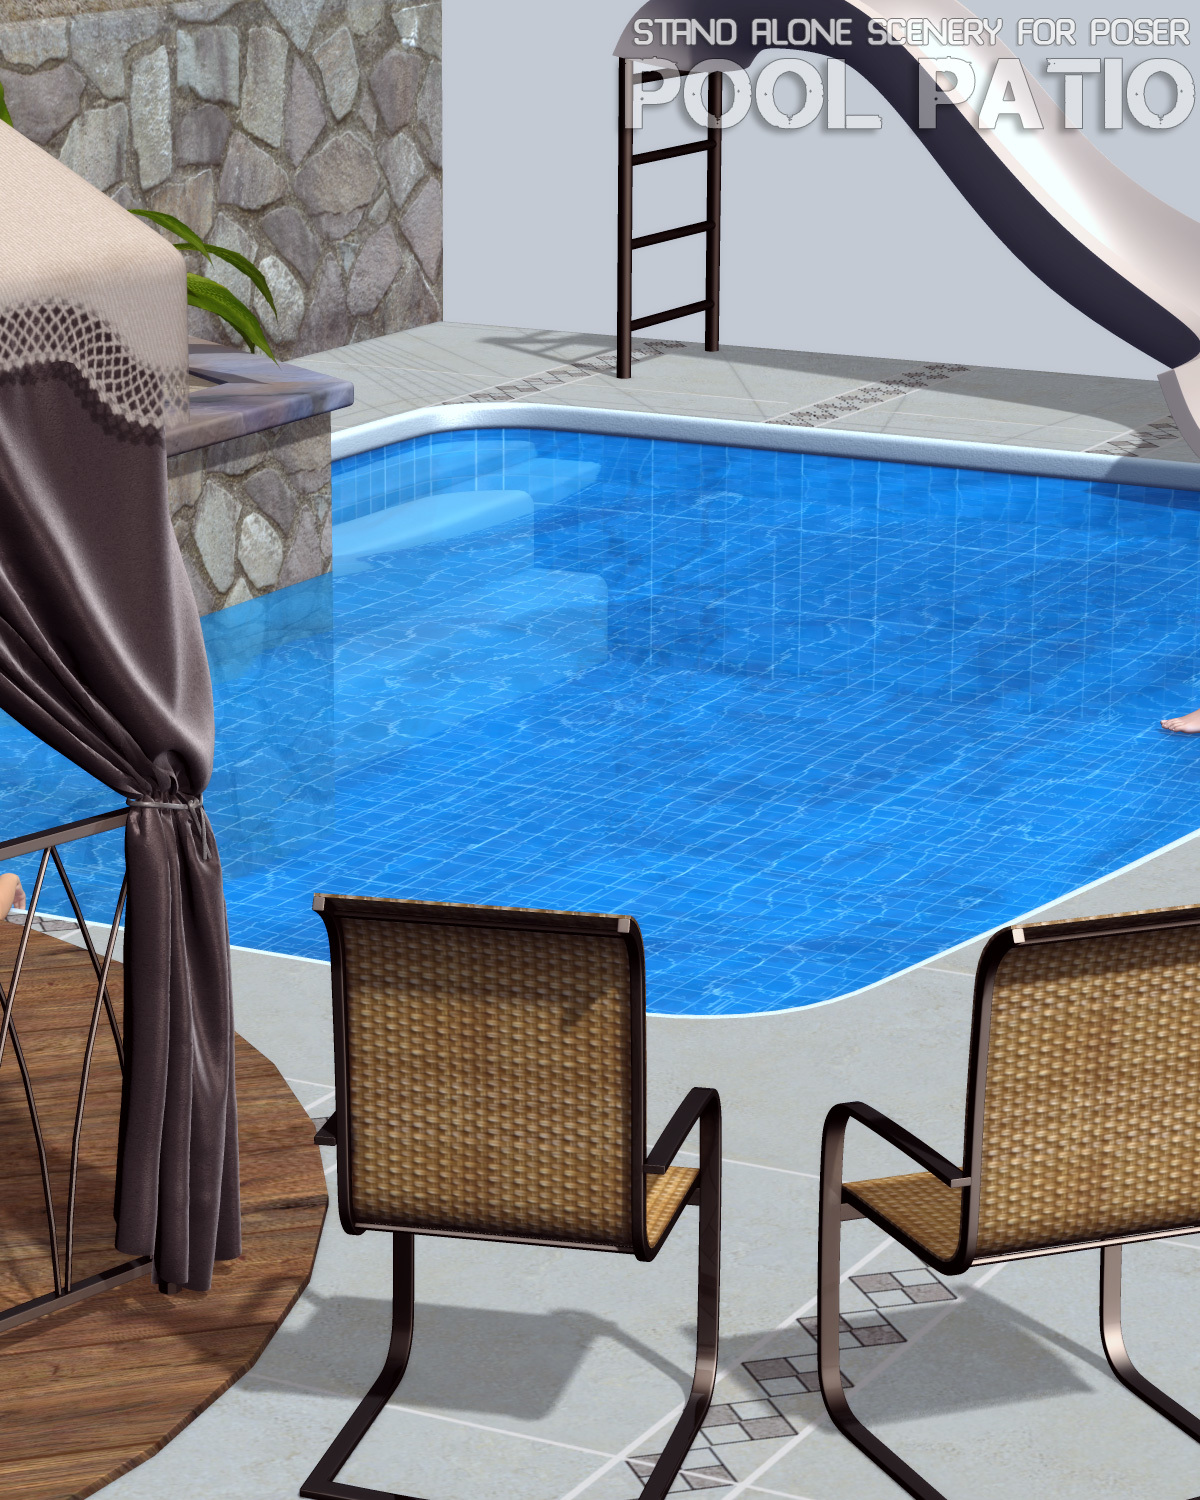 Pool Patio for Poser by lilflame